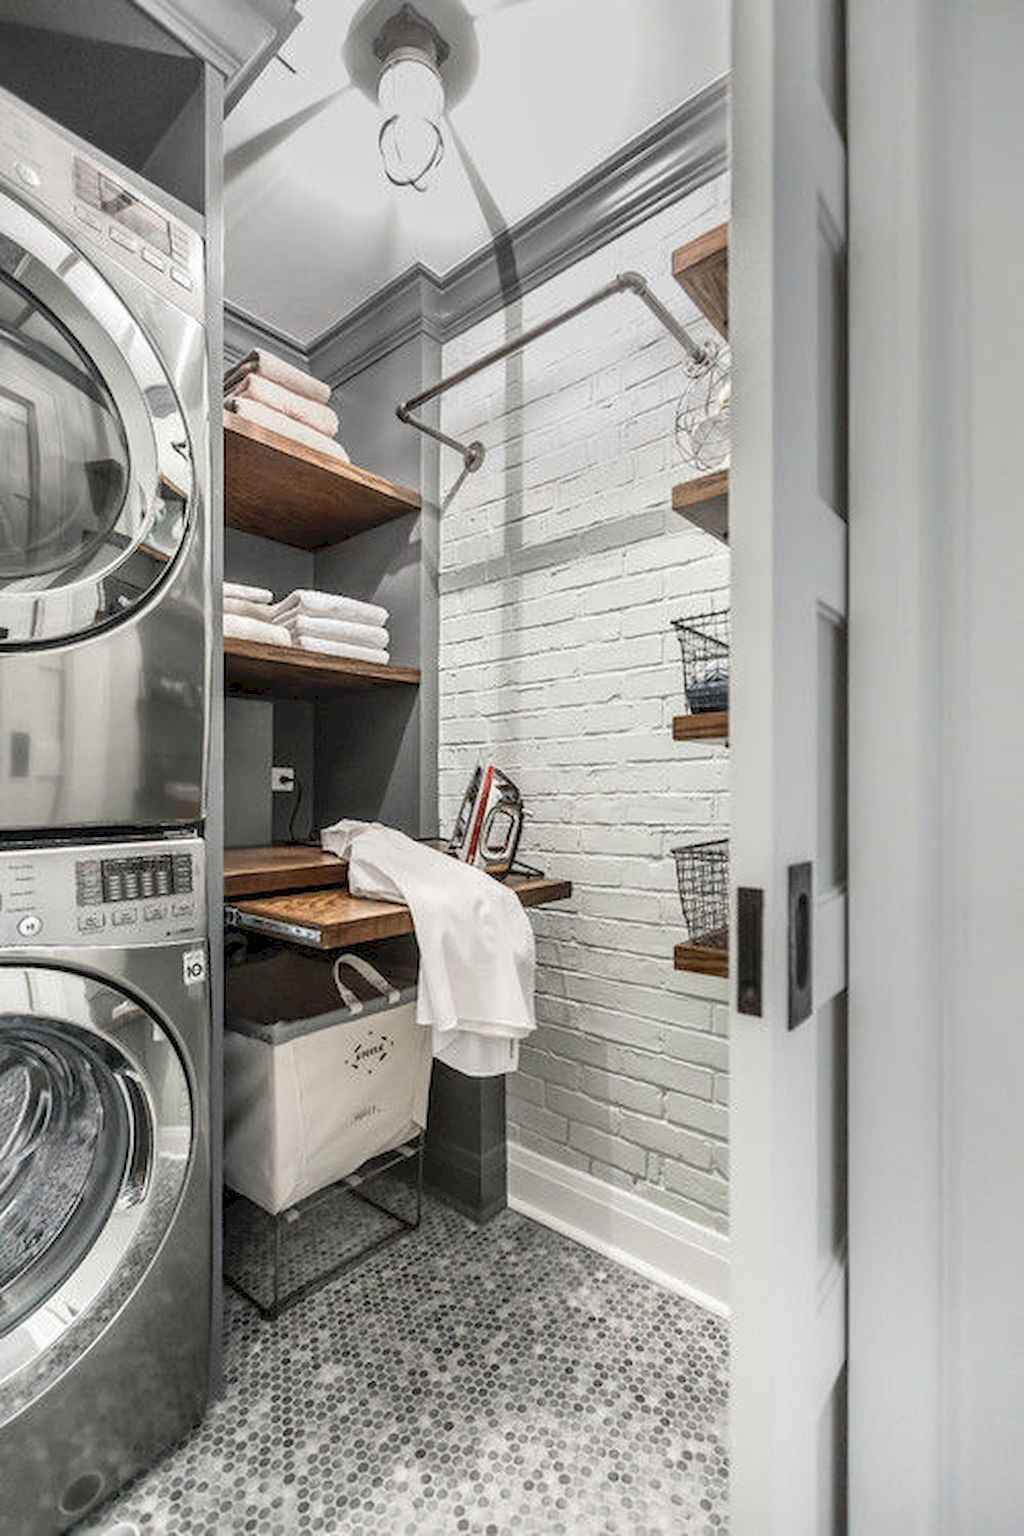 45 Rustic Farmhouse Laundry Room Design Ideas and Makeover (31)